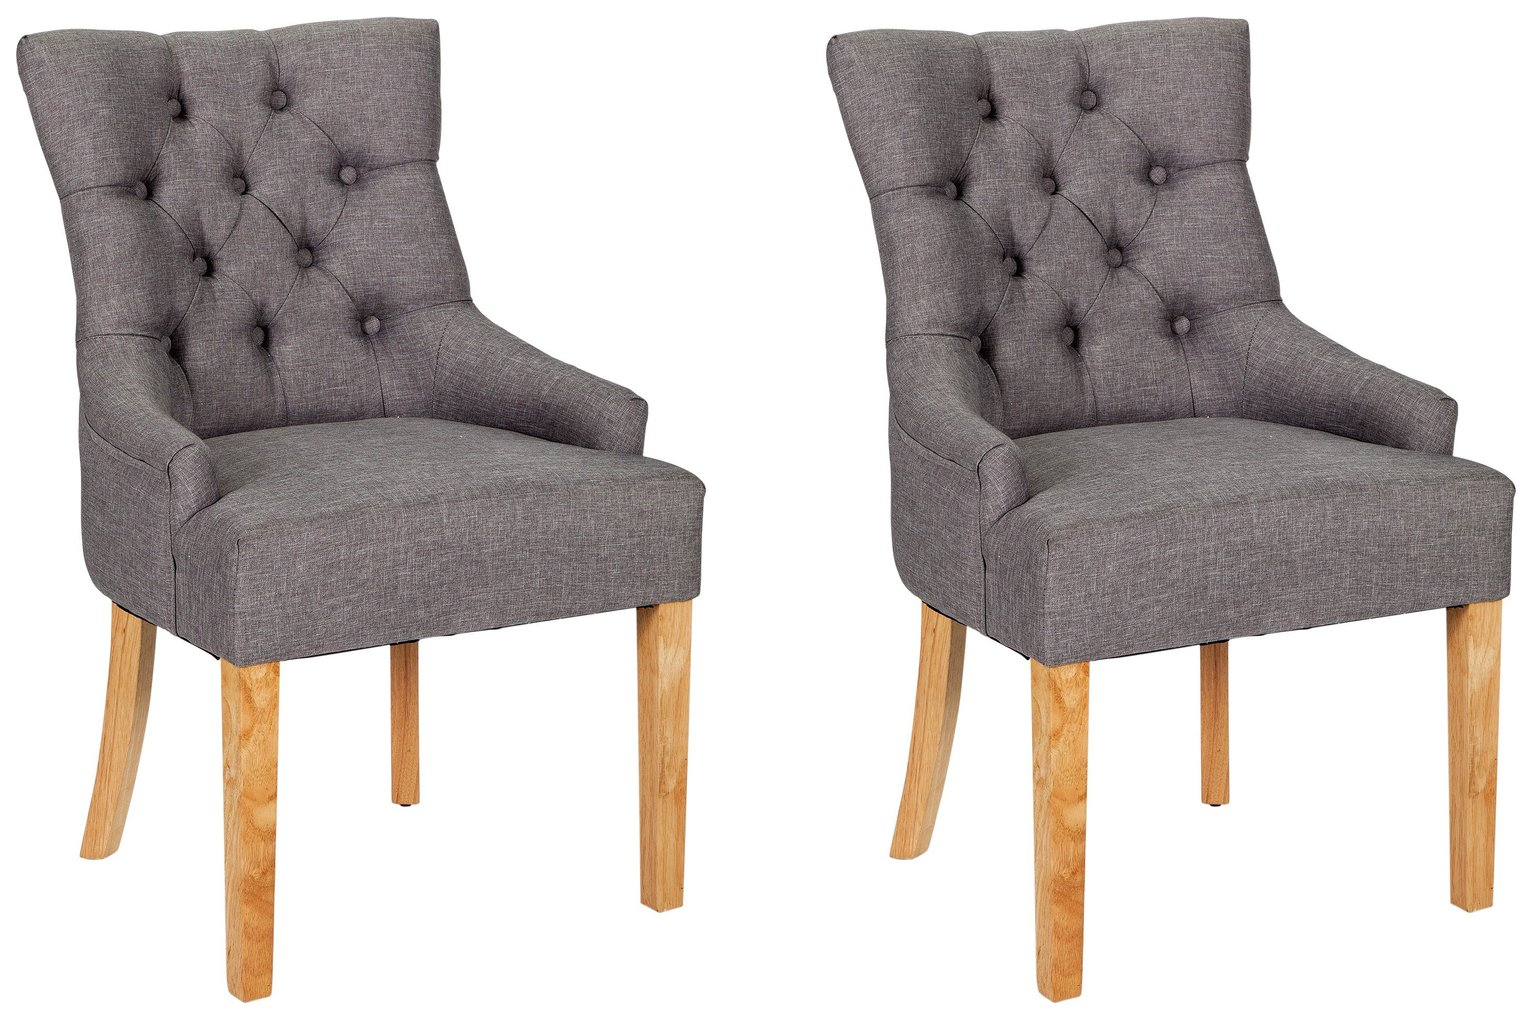 Heart of House Pair of Cherwell Dining Chairs - Charcoal